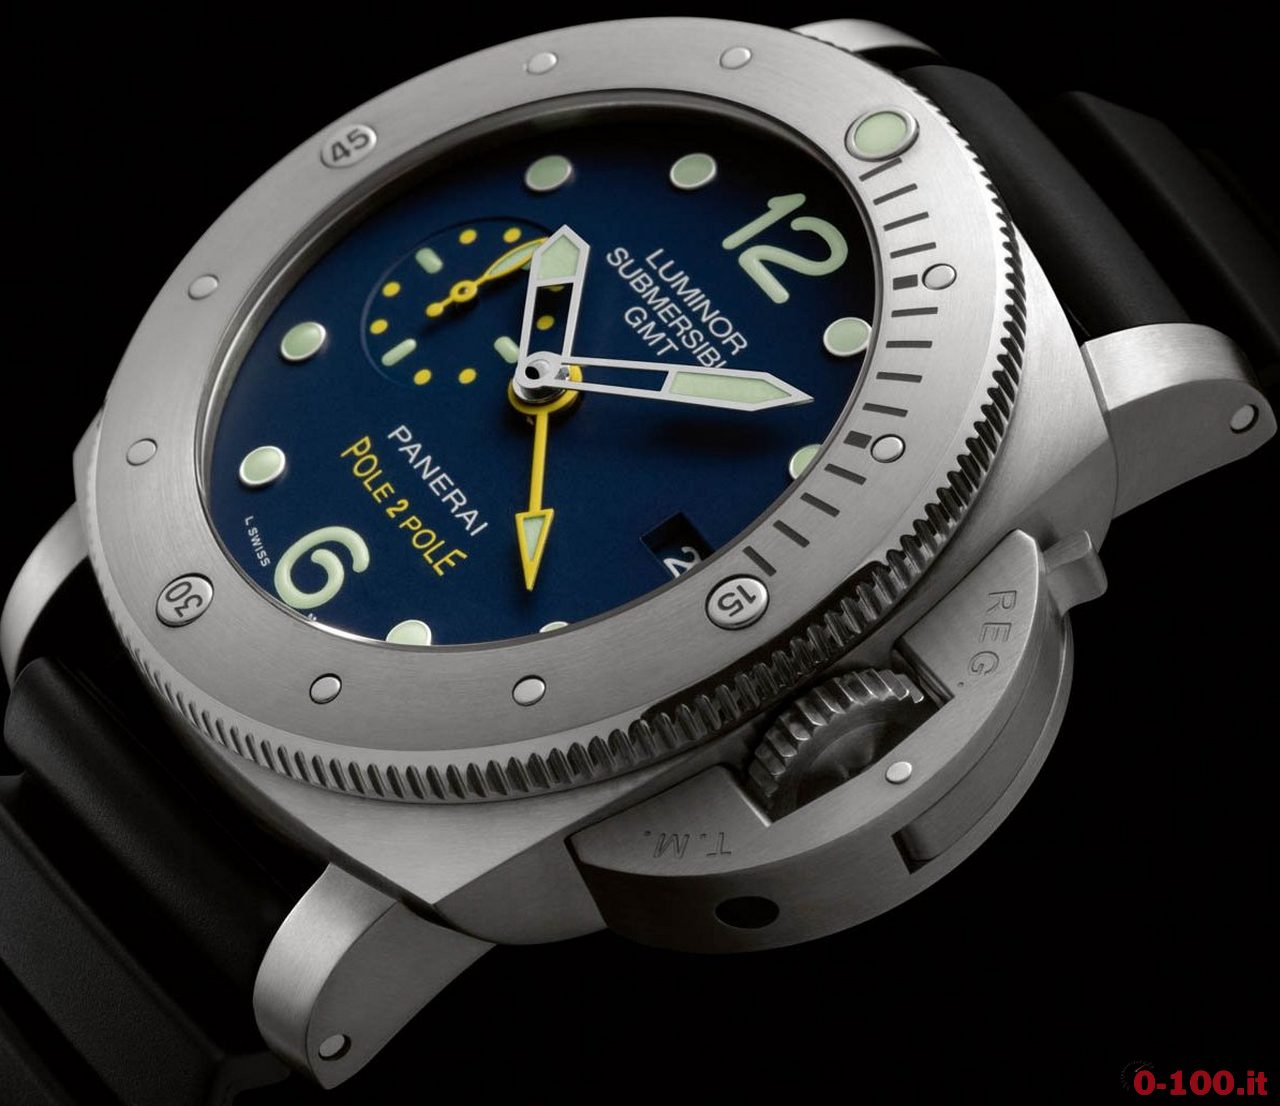 officine-panerai-luminor-submersible-1950-3-days-automatic-titanio-47mm-pam00719-limited-edition-pole2pole-prezzo-price_0-1002